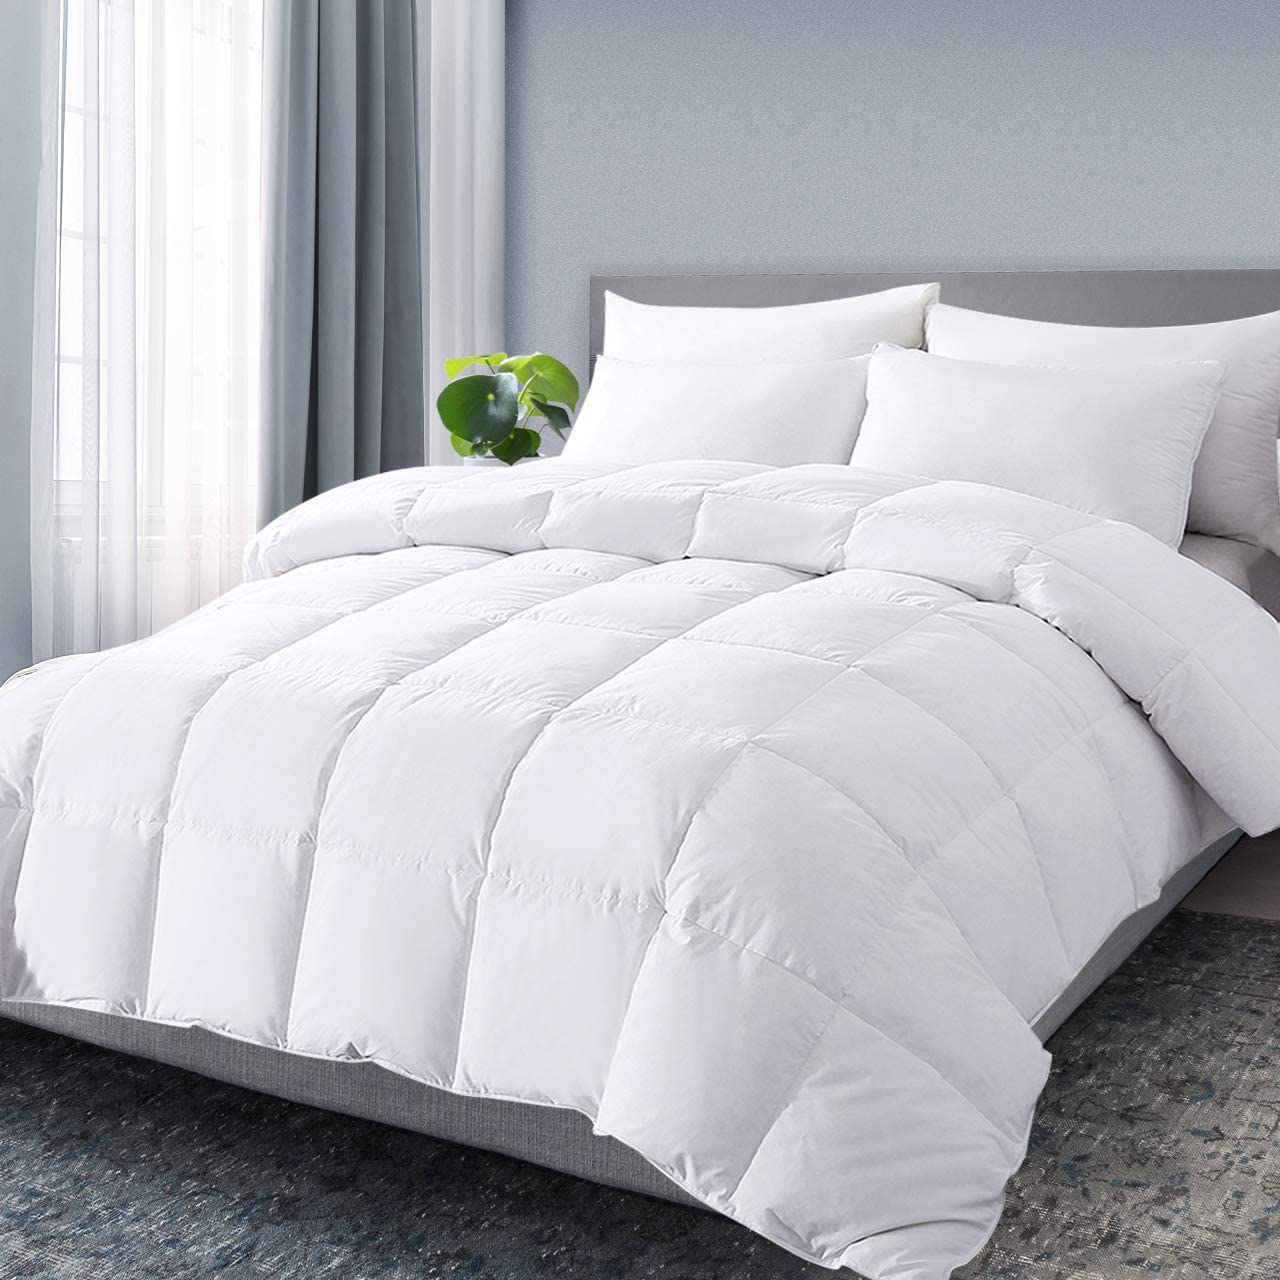 DOWNCOOL Queen Down Comforter, White Goose Duck Down and Feather Filling, Medium Warmth All Season 100% Cotton Quilted Duvet Insert Queen